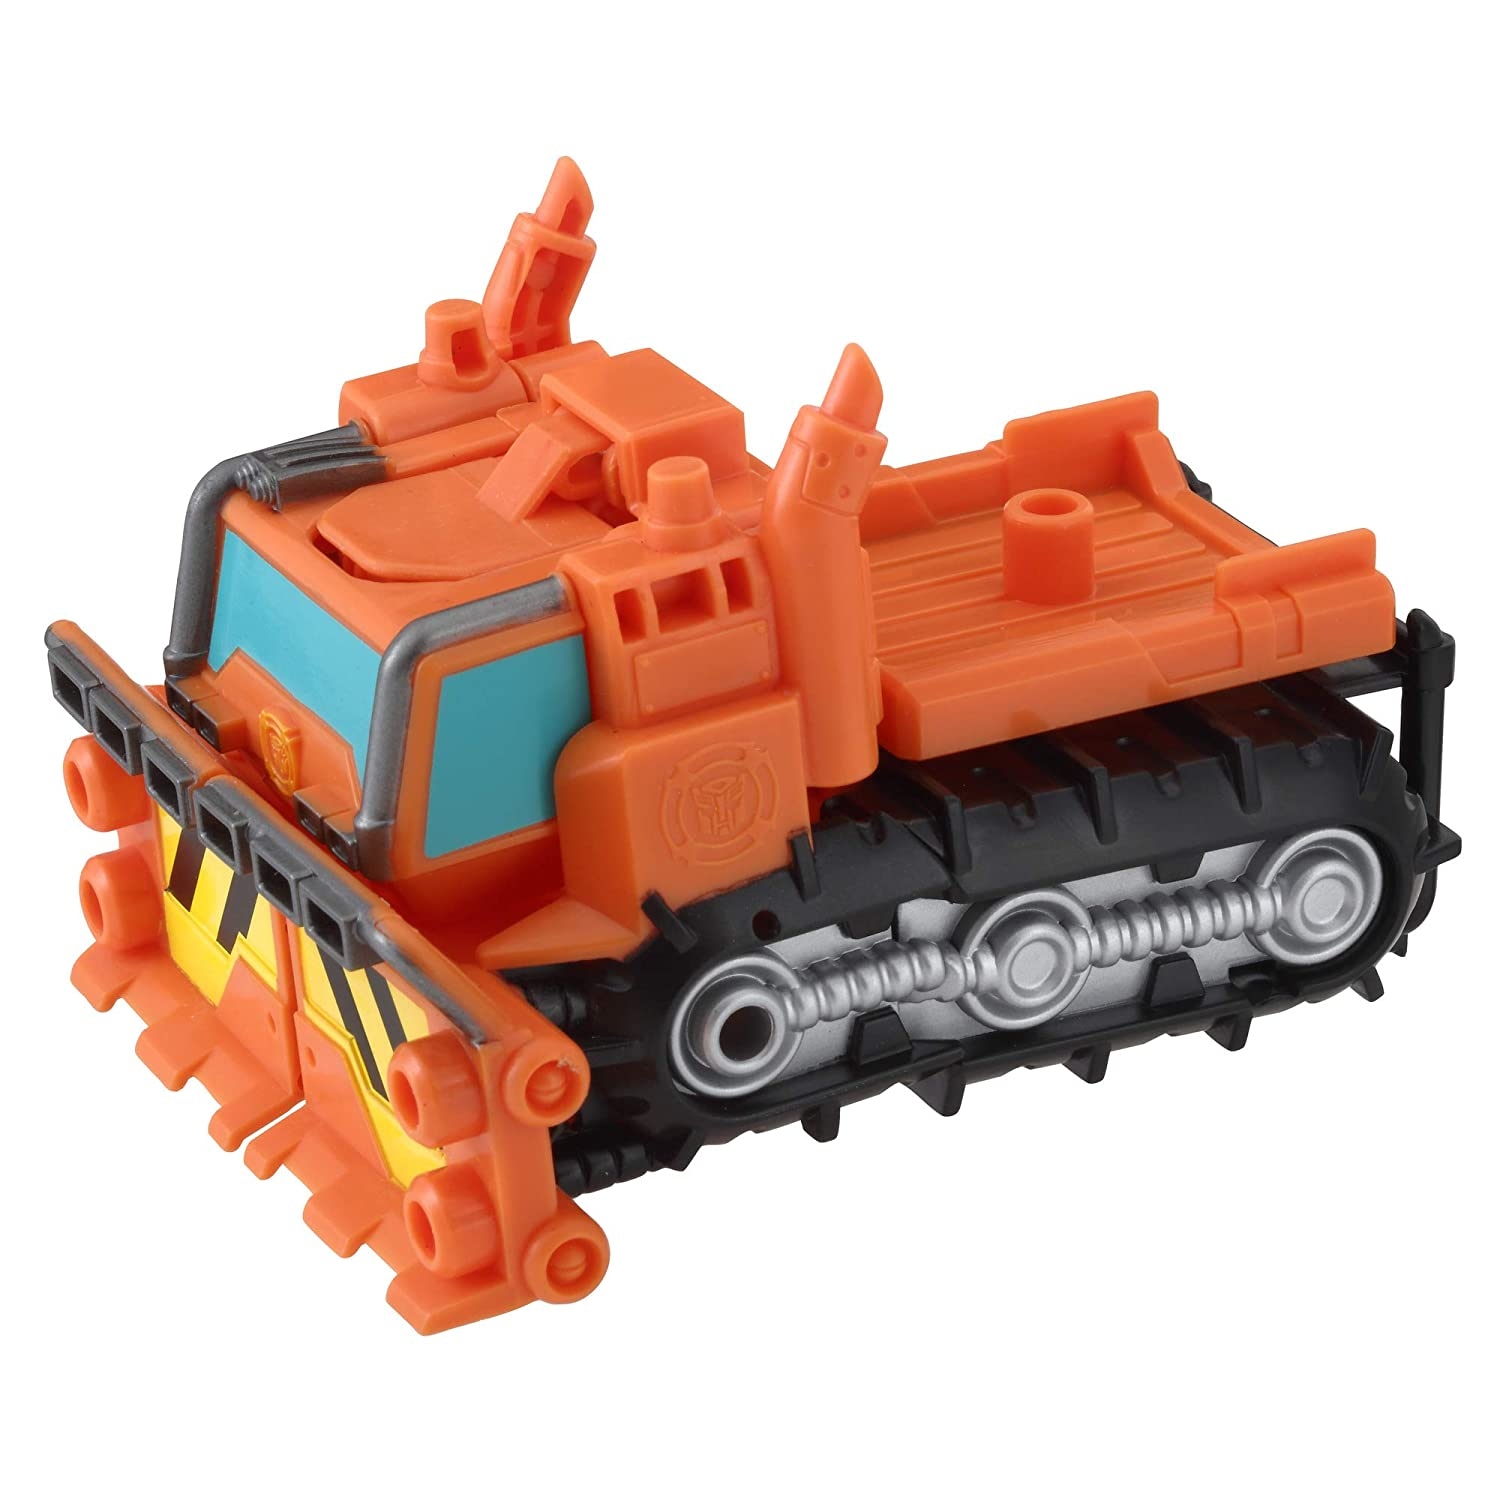 Playskool Heroes Transformers Rescue Bots Salvage Cement Mixer Hasbro E4107AS00